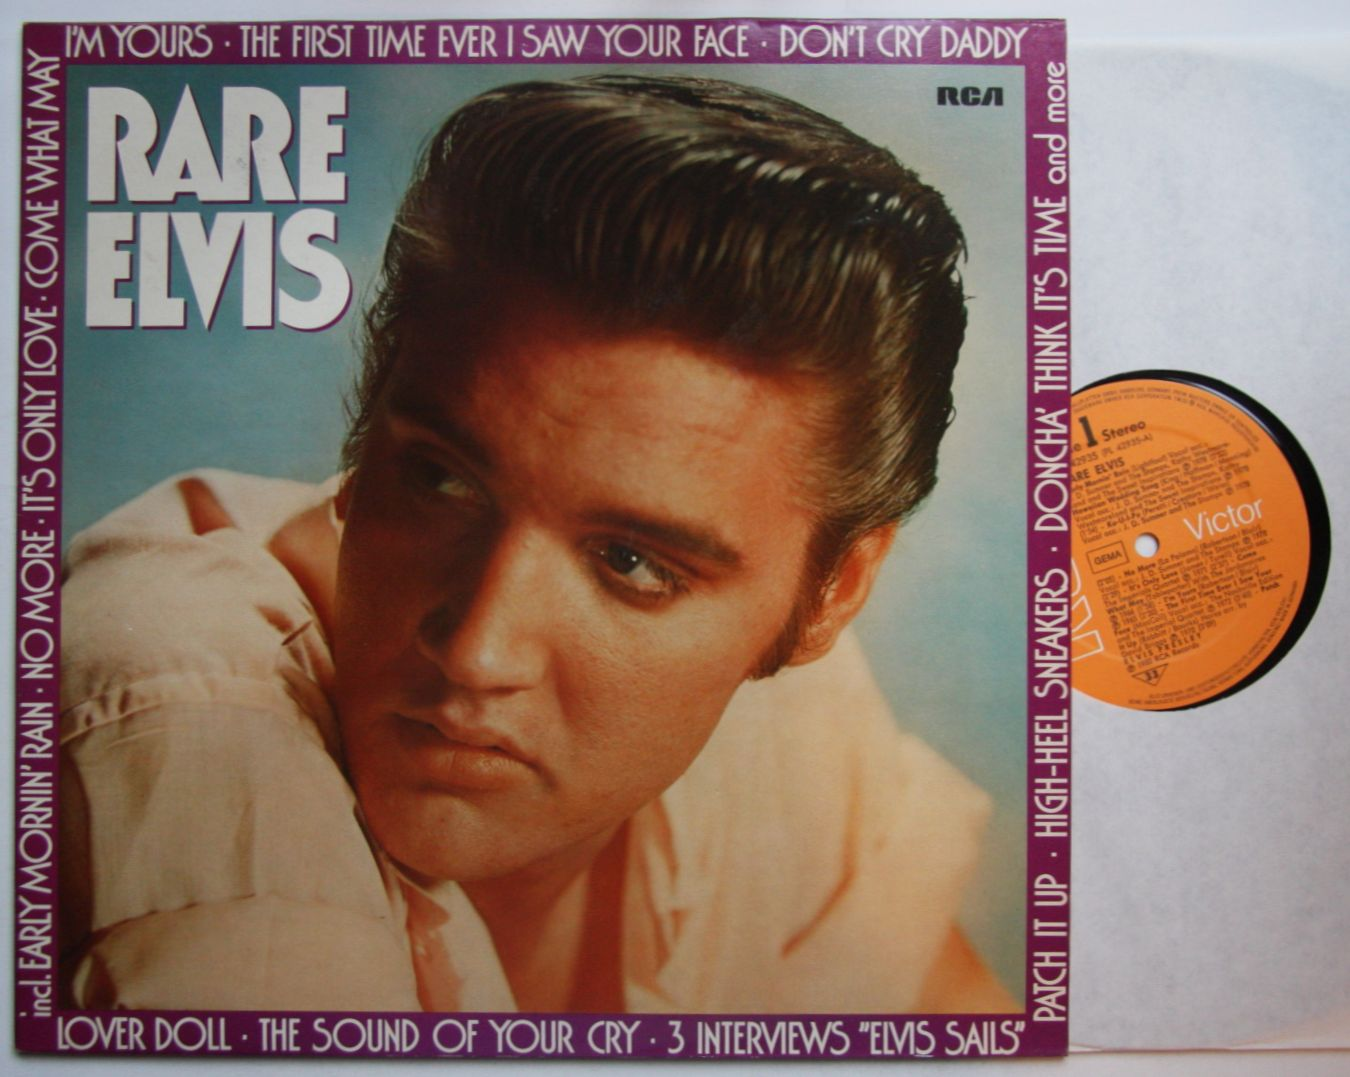 elvis presley rare elvis vol 2 records lps vinyl and. Black Bedroom Furniture Sets. Home Design Ideas